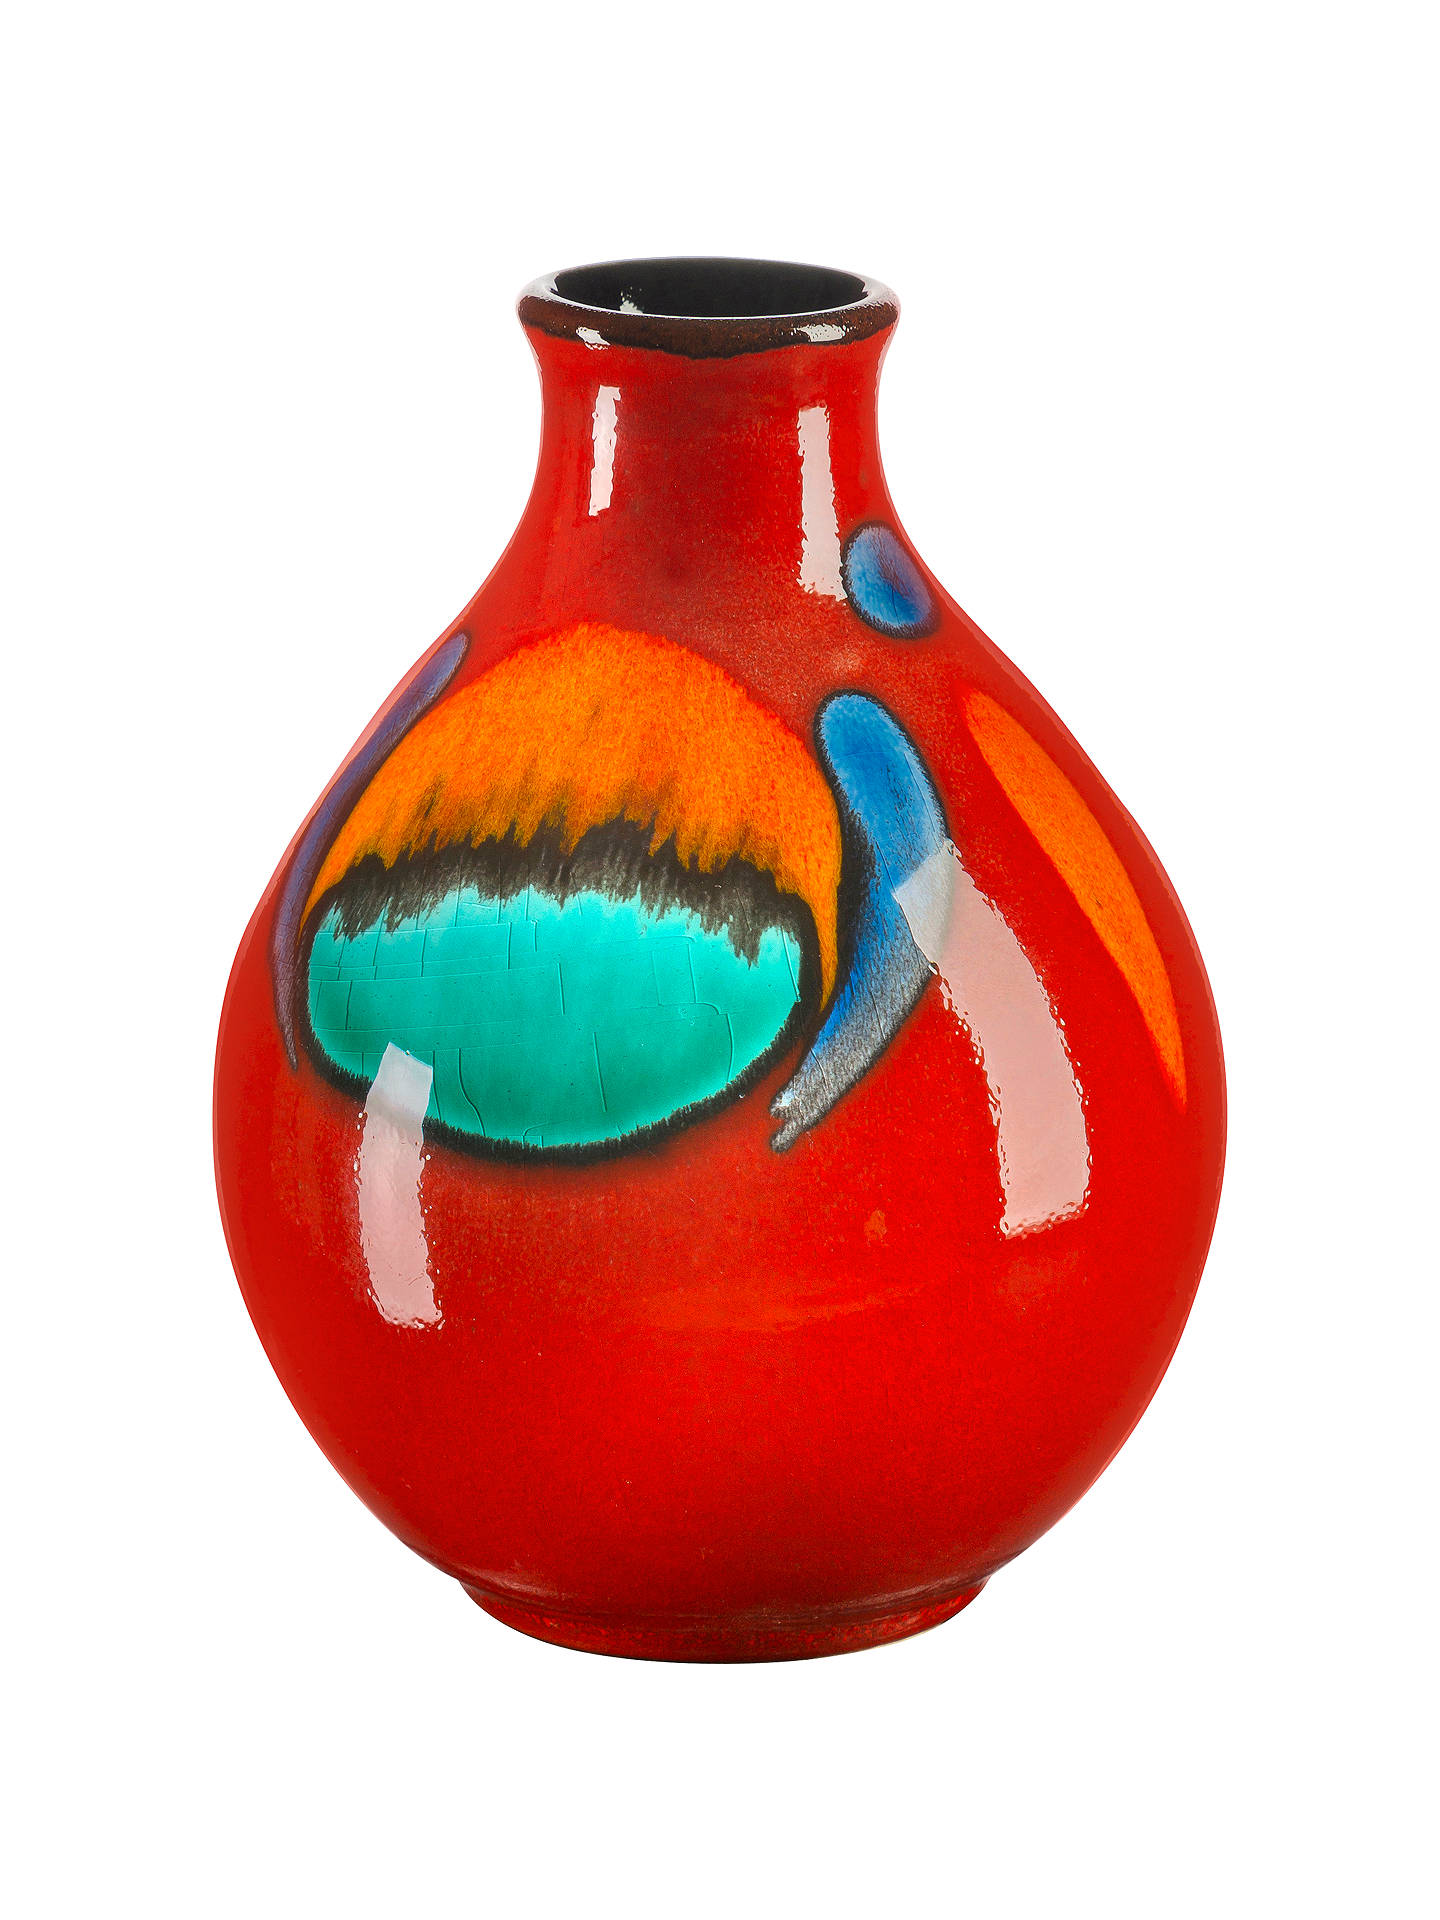 BuyPoole Pottery Volcano Purse Bud Vase, 12.5cm Online at johnlewis.com